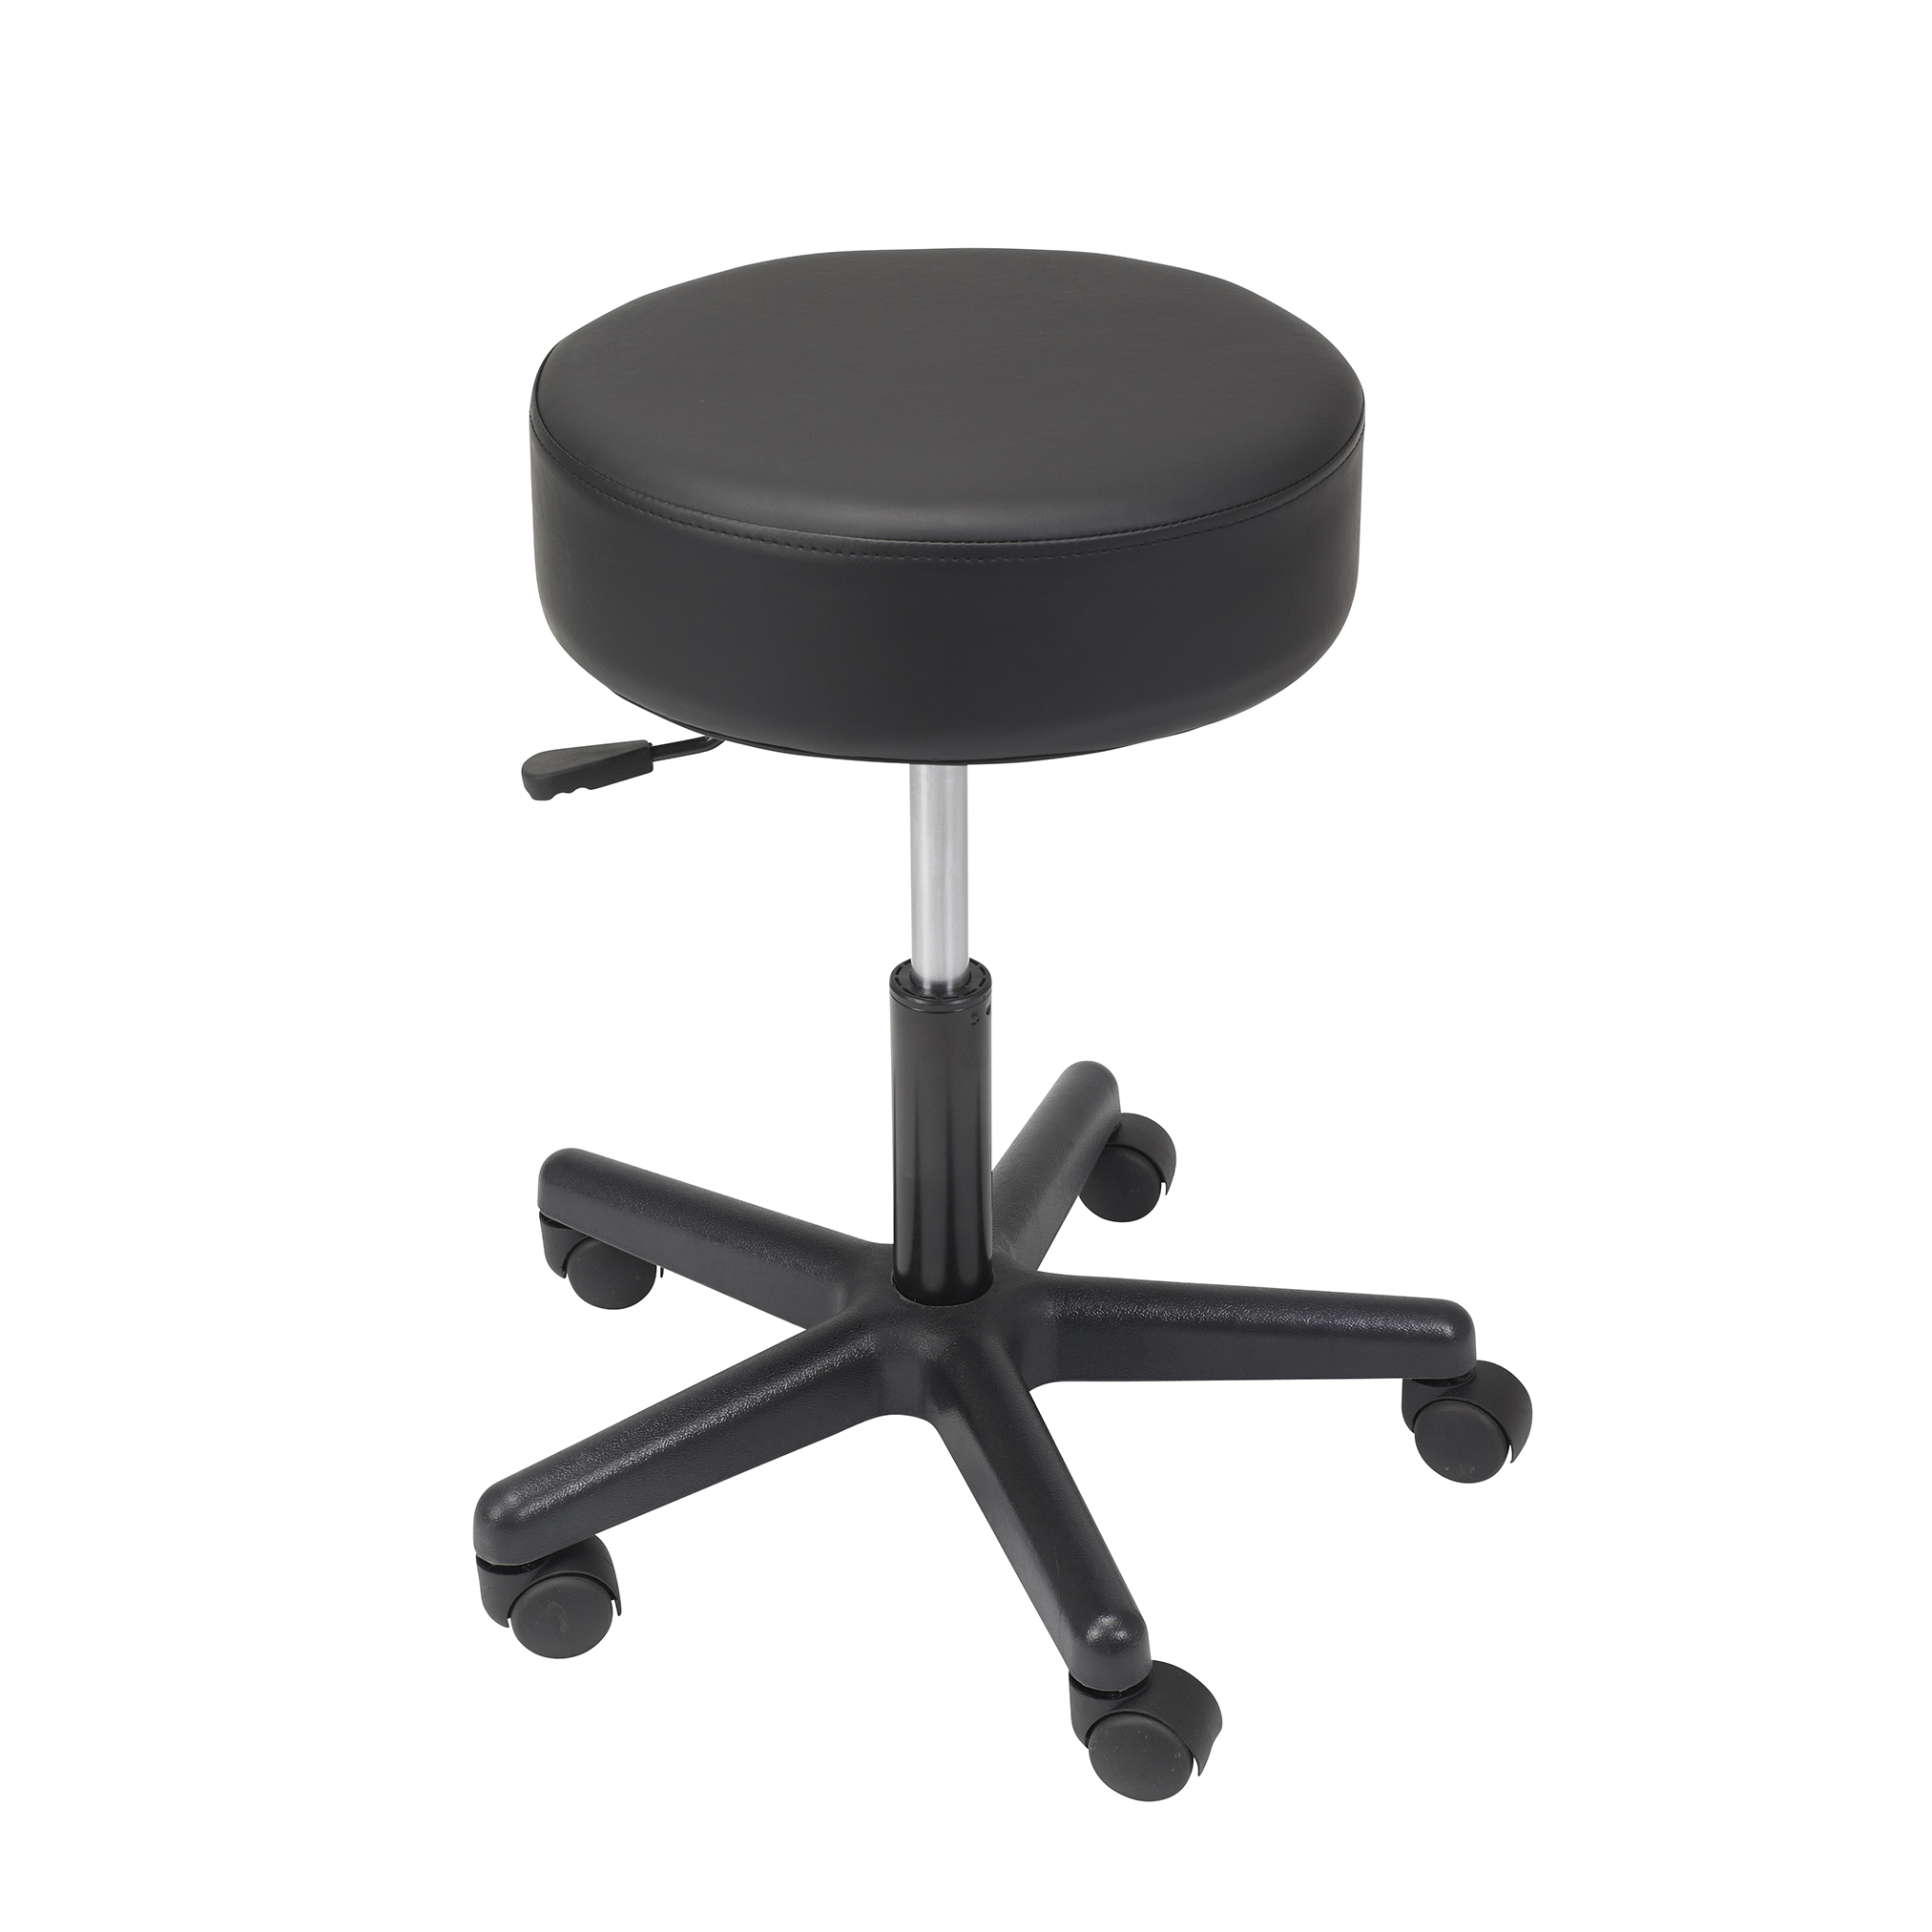 revolving chair for doctor vintage office padded seat adjustable height stool plastic